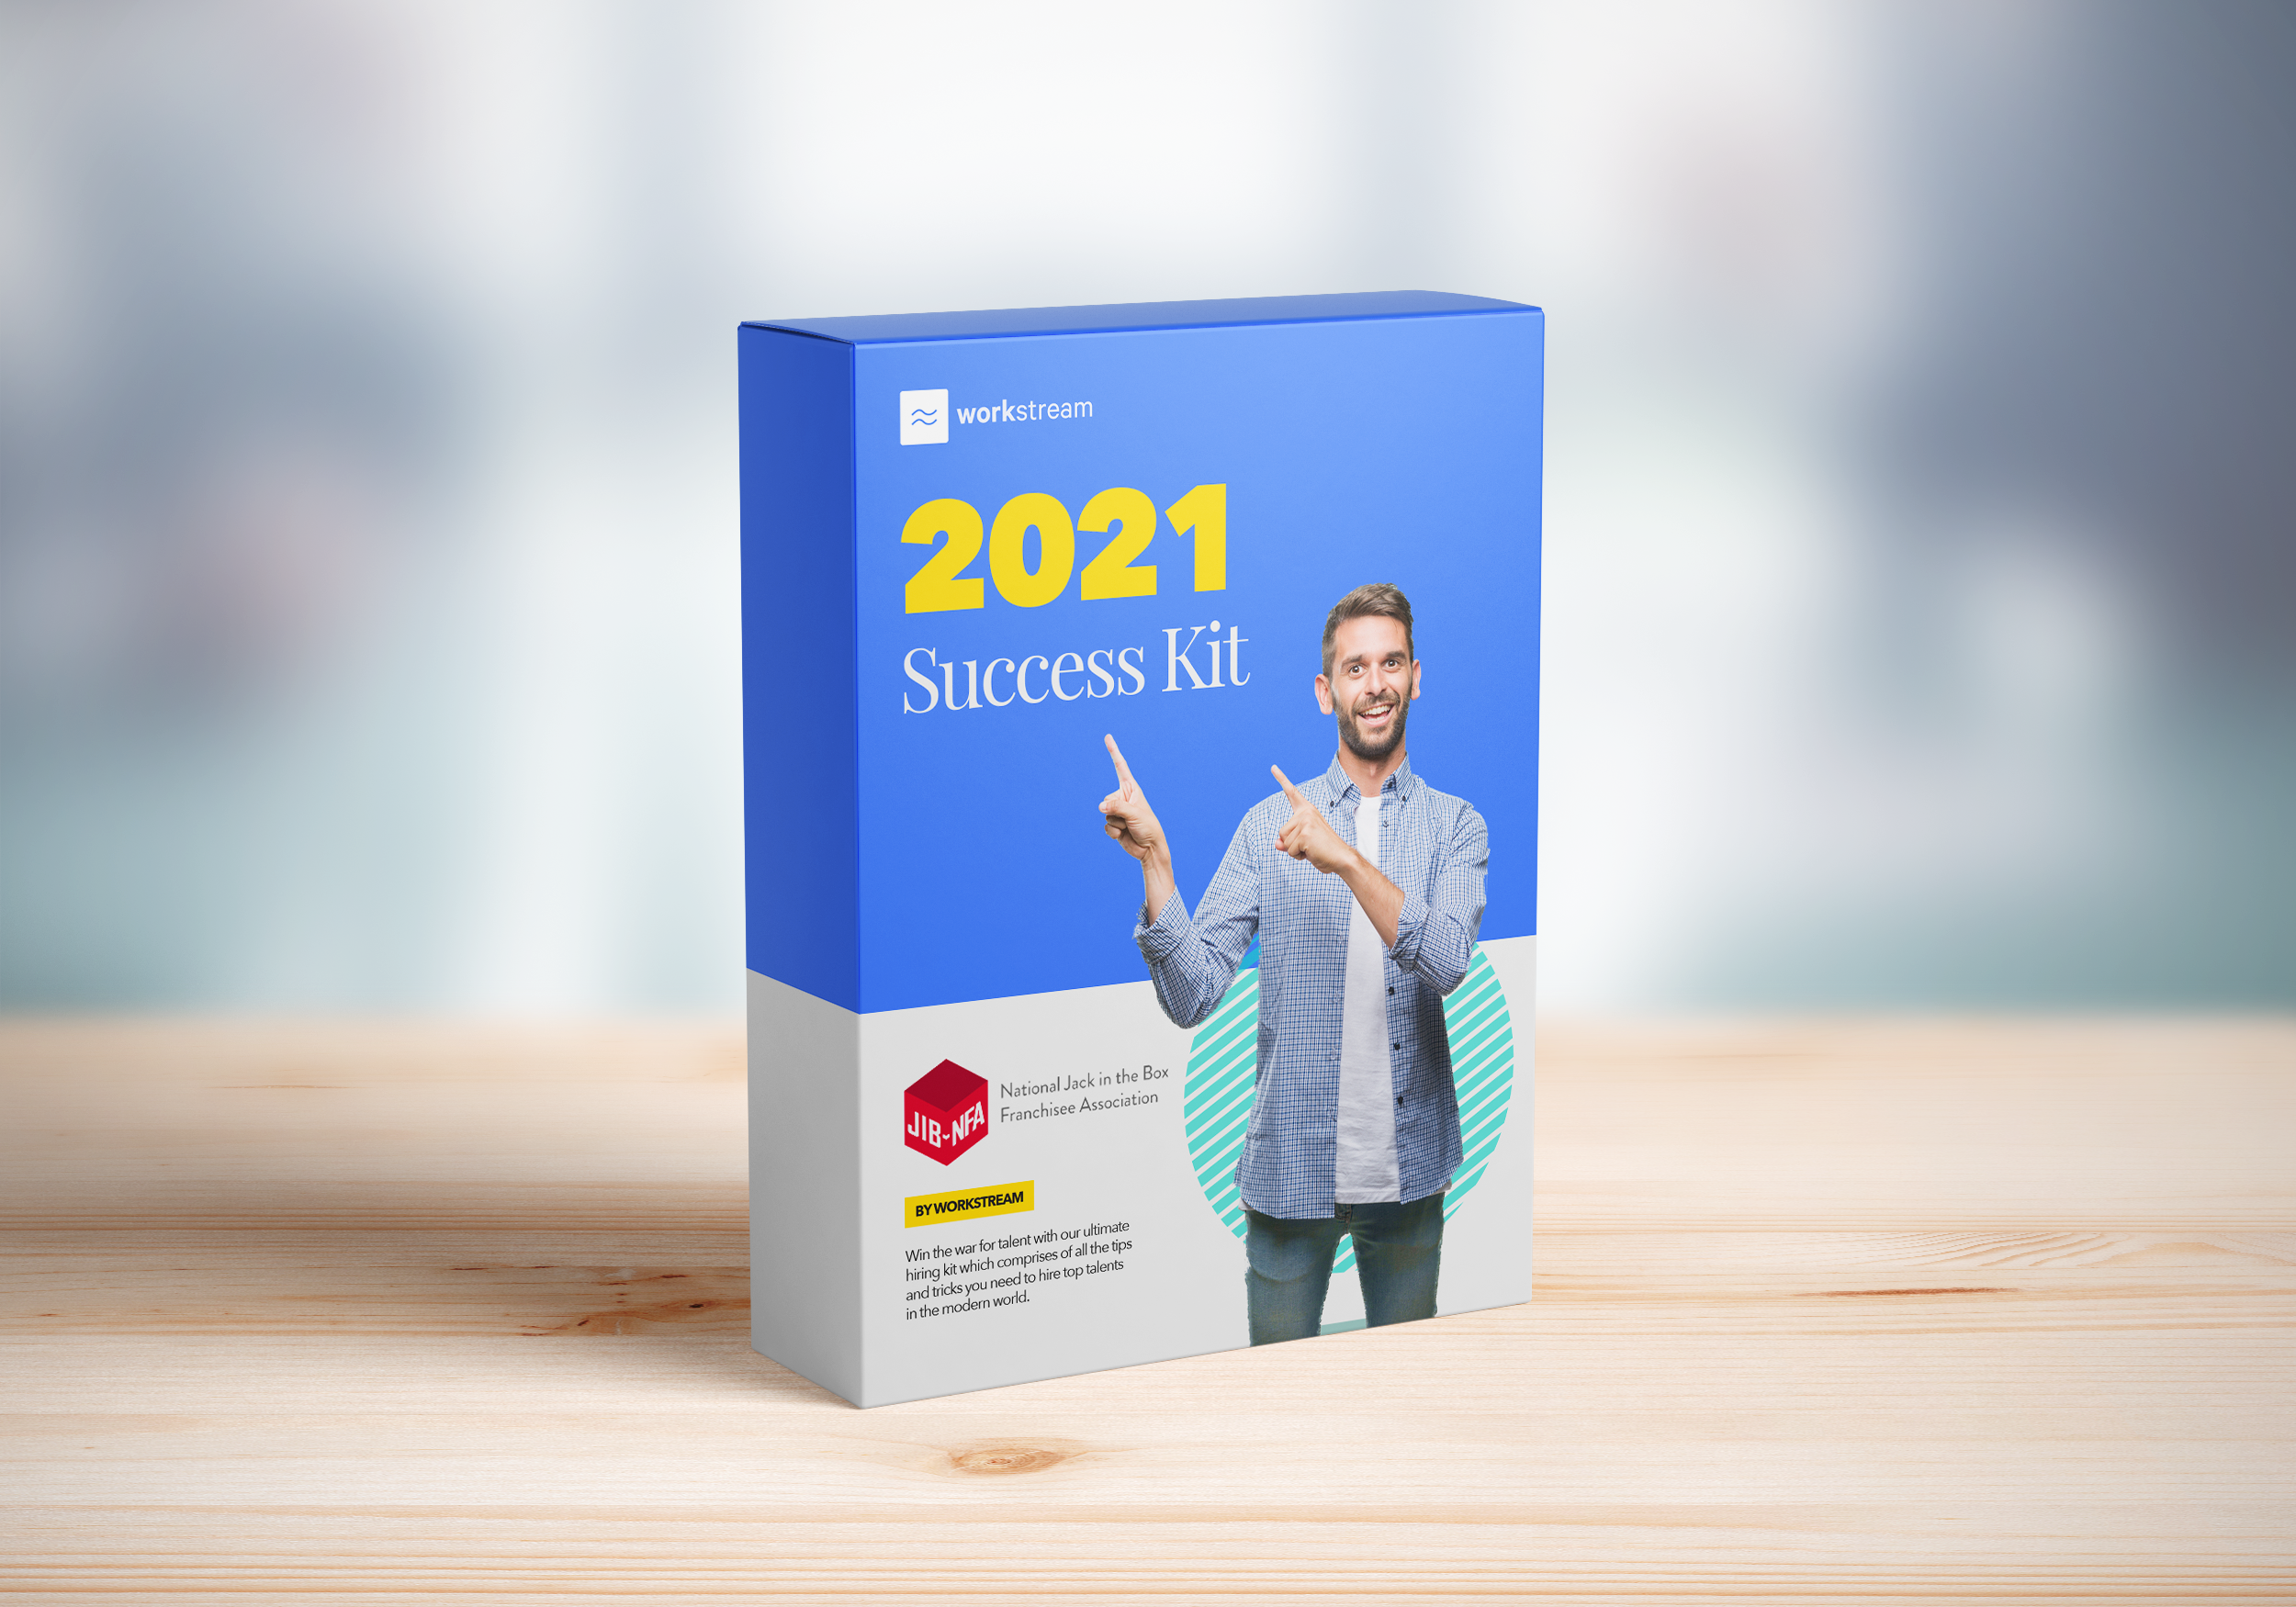 2021 success kit JIBNFA